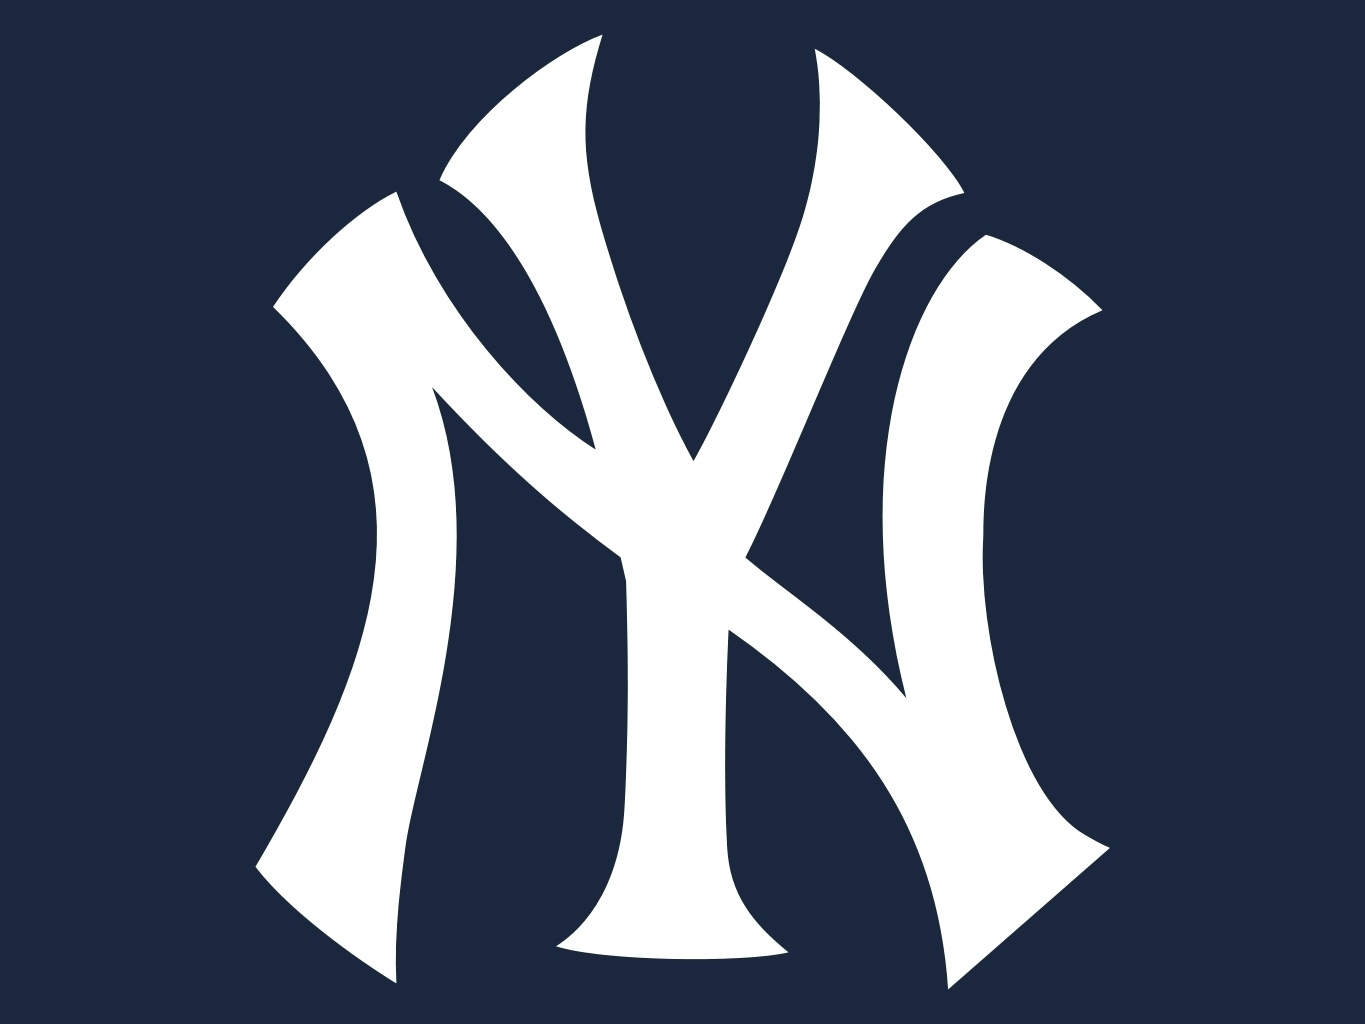 news, scores and statistics about the new york yankees of the